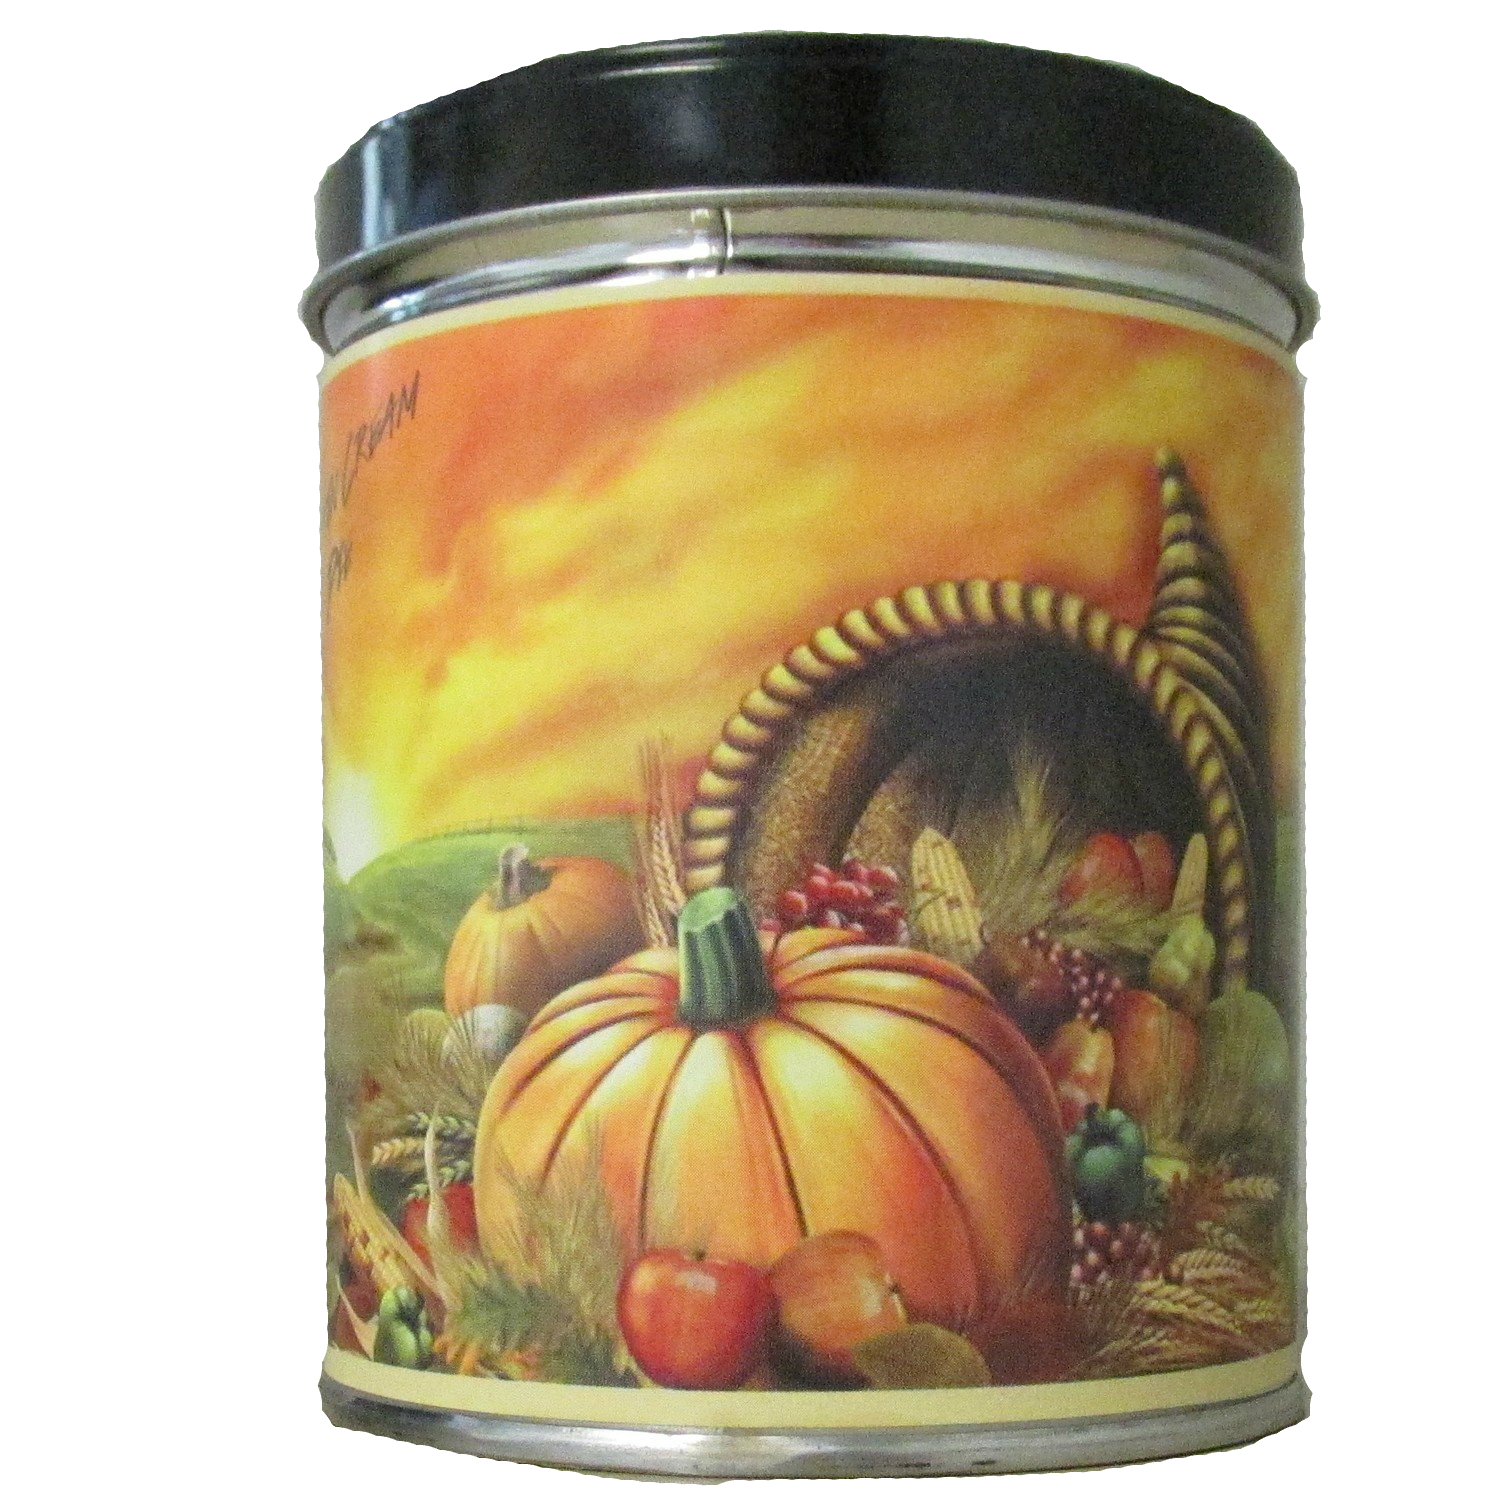 Pumpkin Cream Pie in Cornucopia Tin